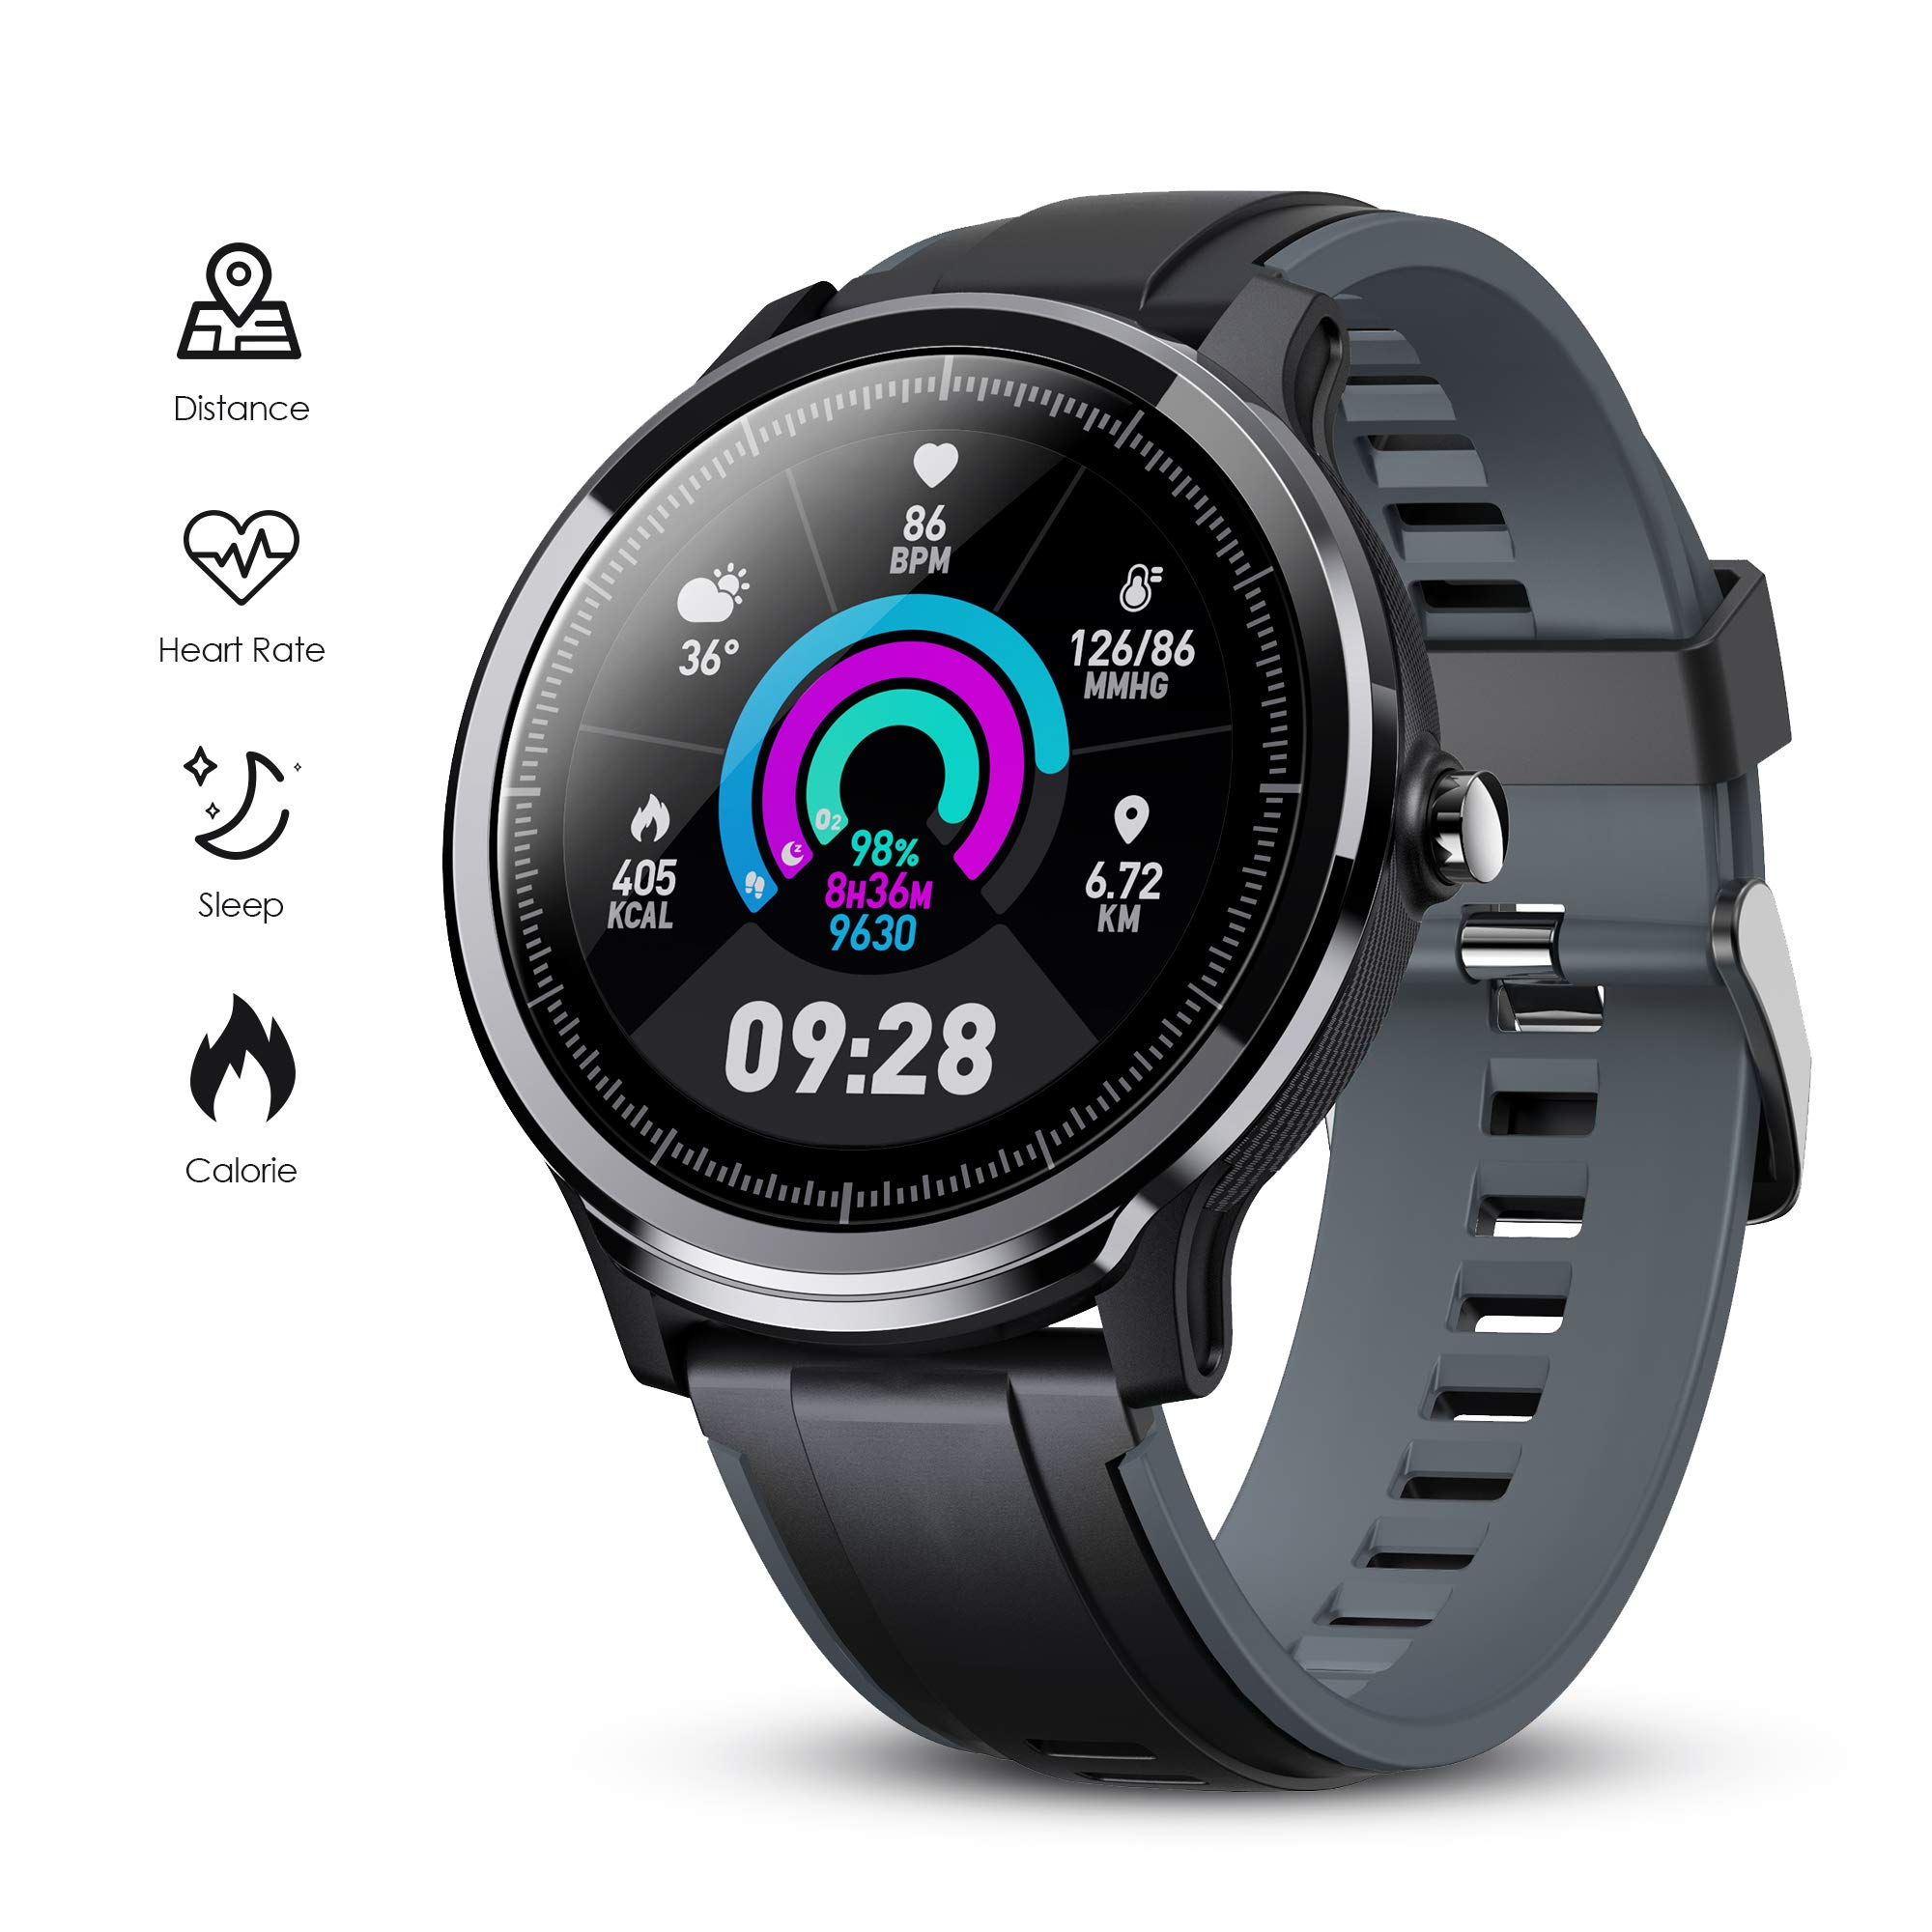 gokoo-smart-watch-sport-activity-tracker-waterproof-smartwatch-for-men-with-blood-pressure-heart-rate-sleep-monitor-breathing-train-step-distance-calorie-full-touch-camera-music-control-blac